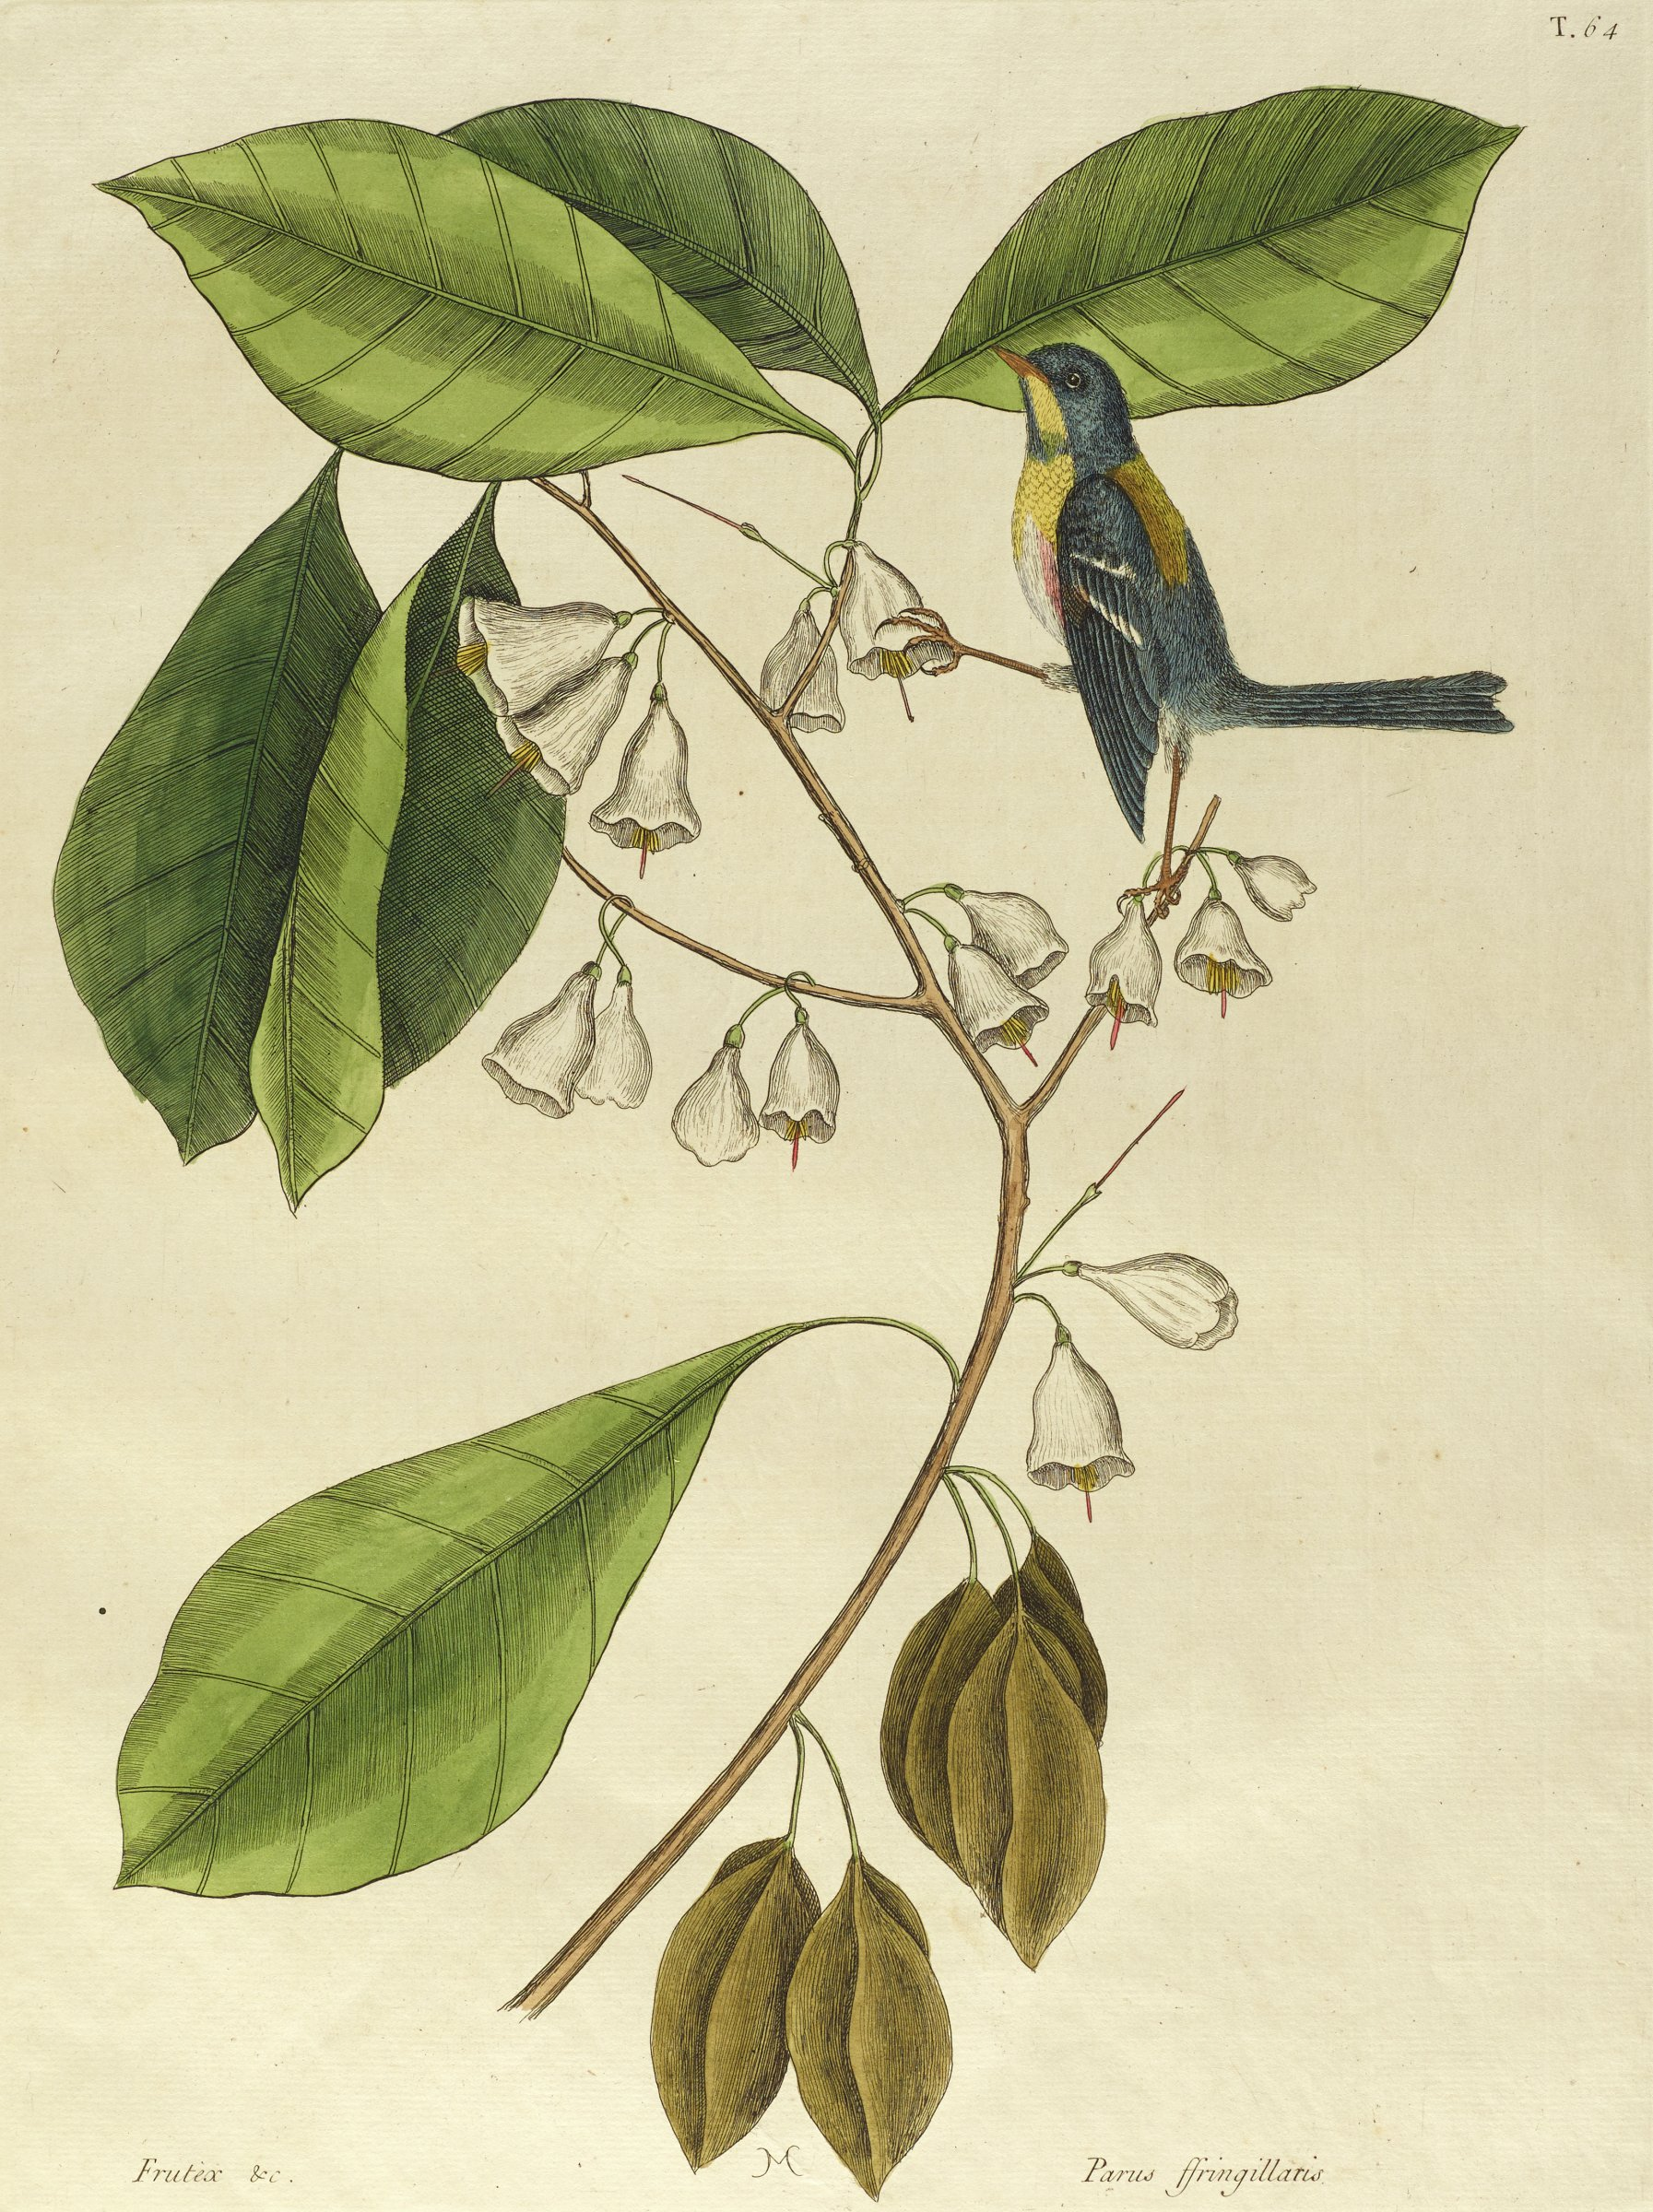 A black, yellow, white, and red bird stands on the thin branch of a plant with big green leaves a small white bow-shaped flowers.